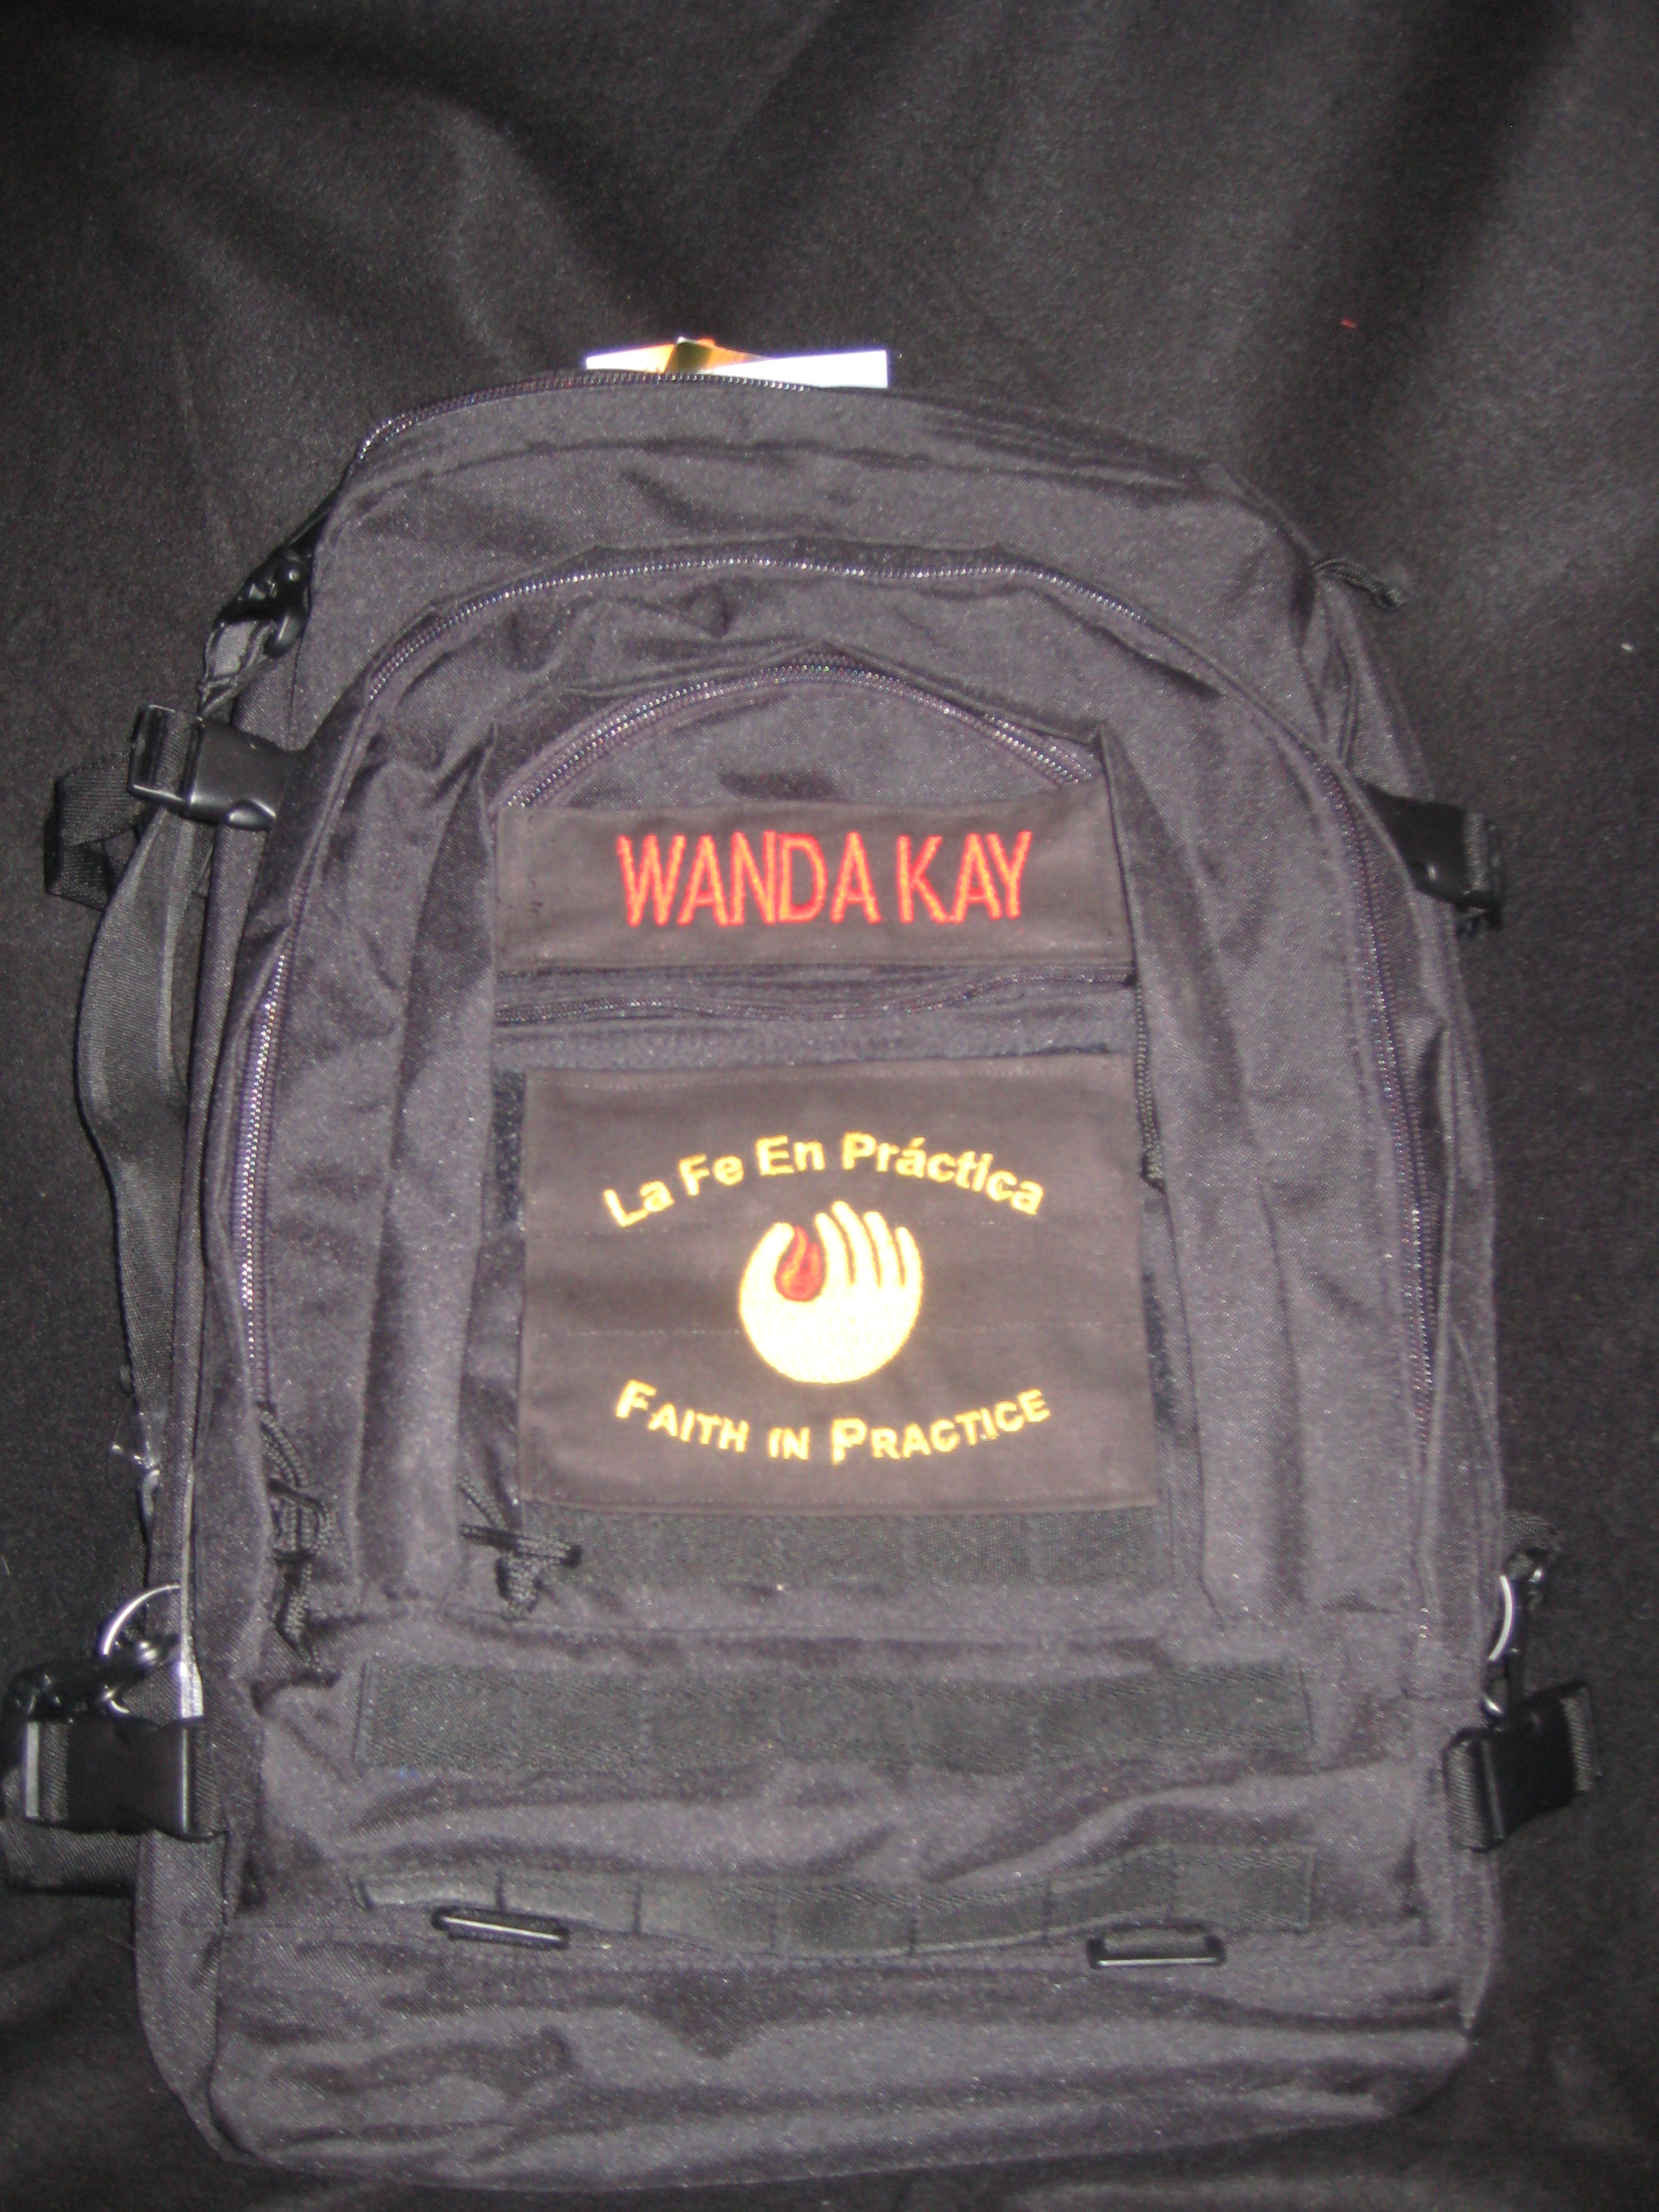 FIP backpack